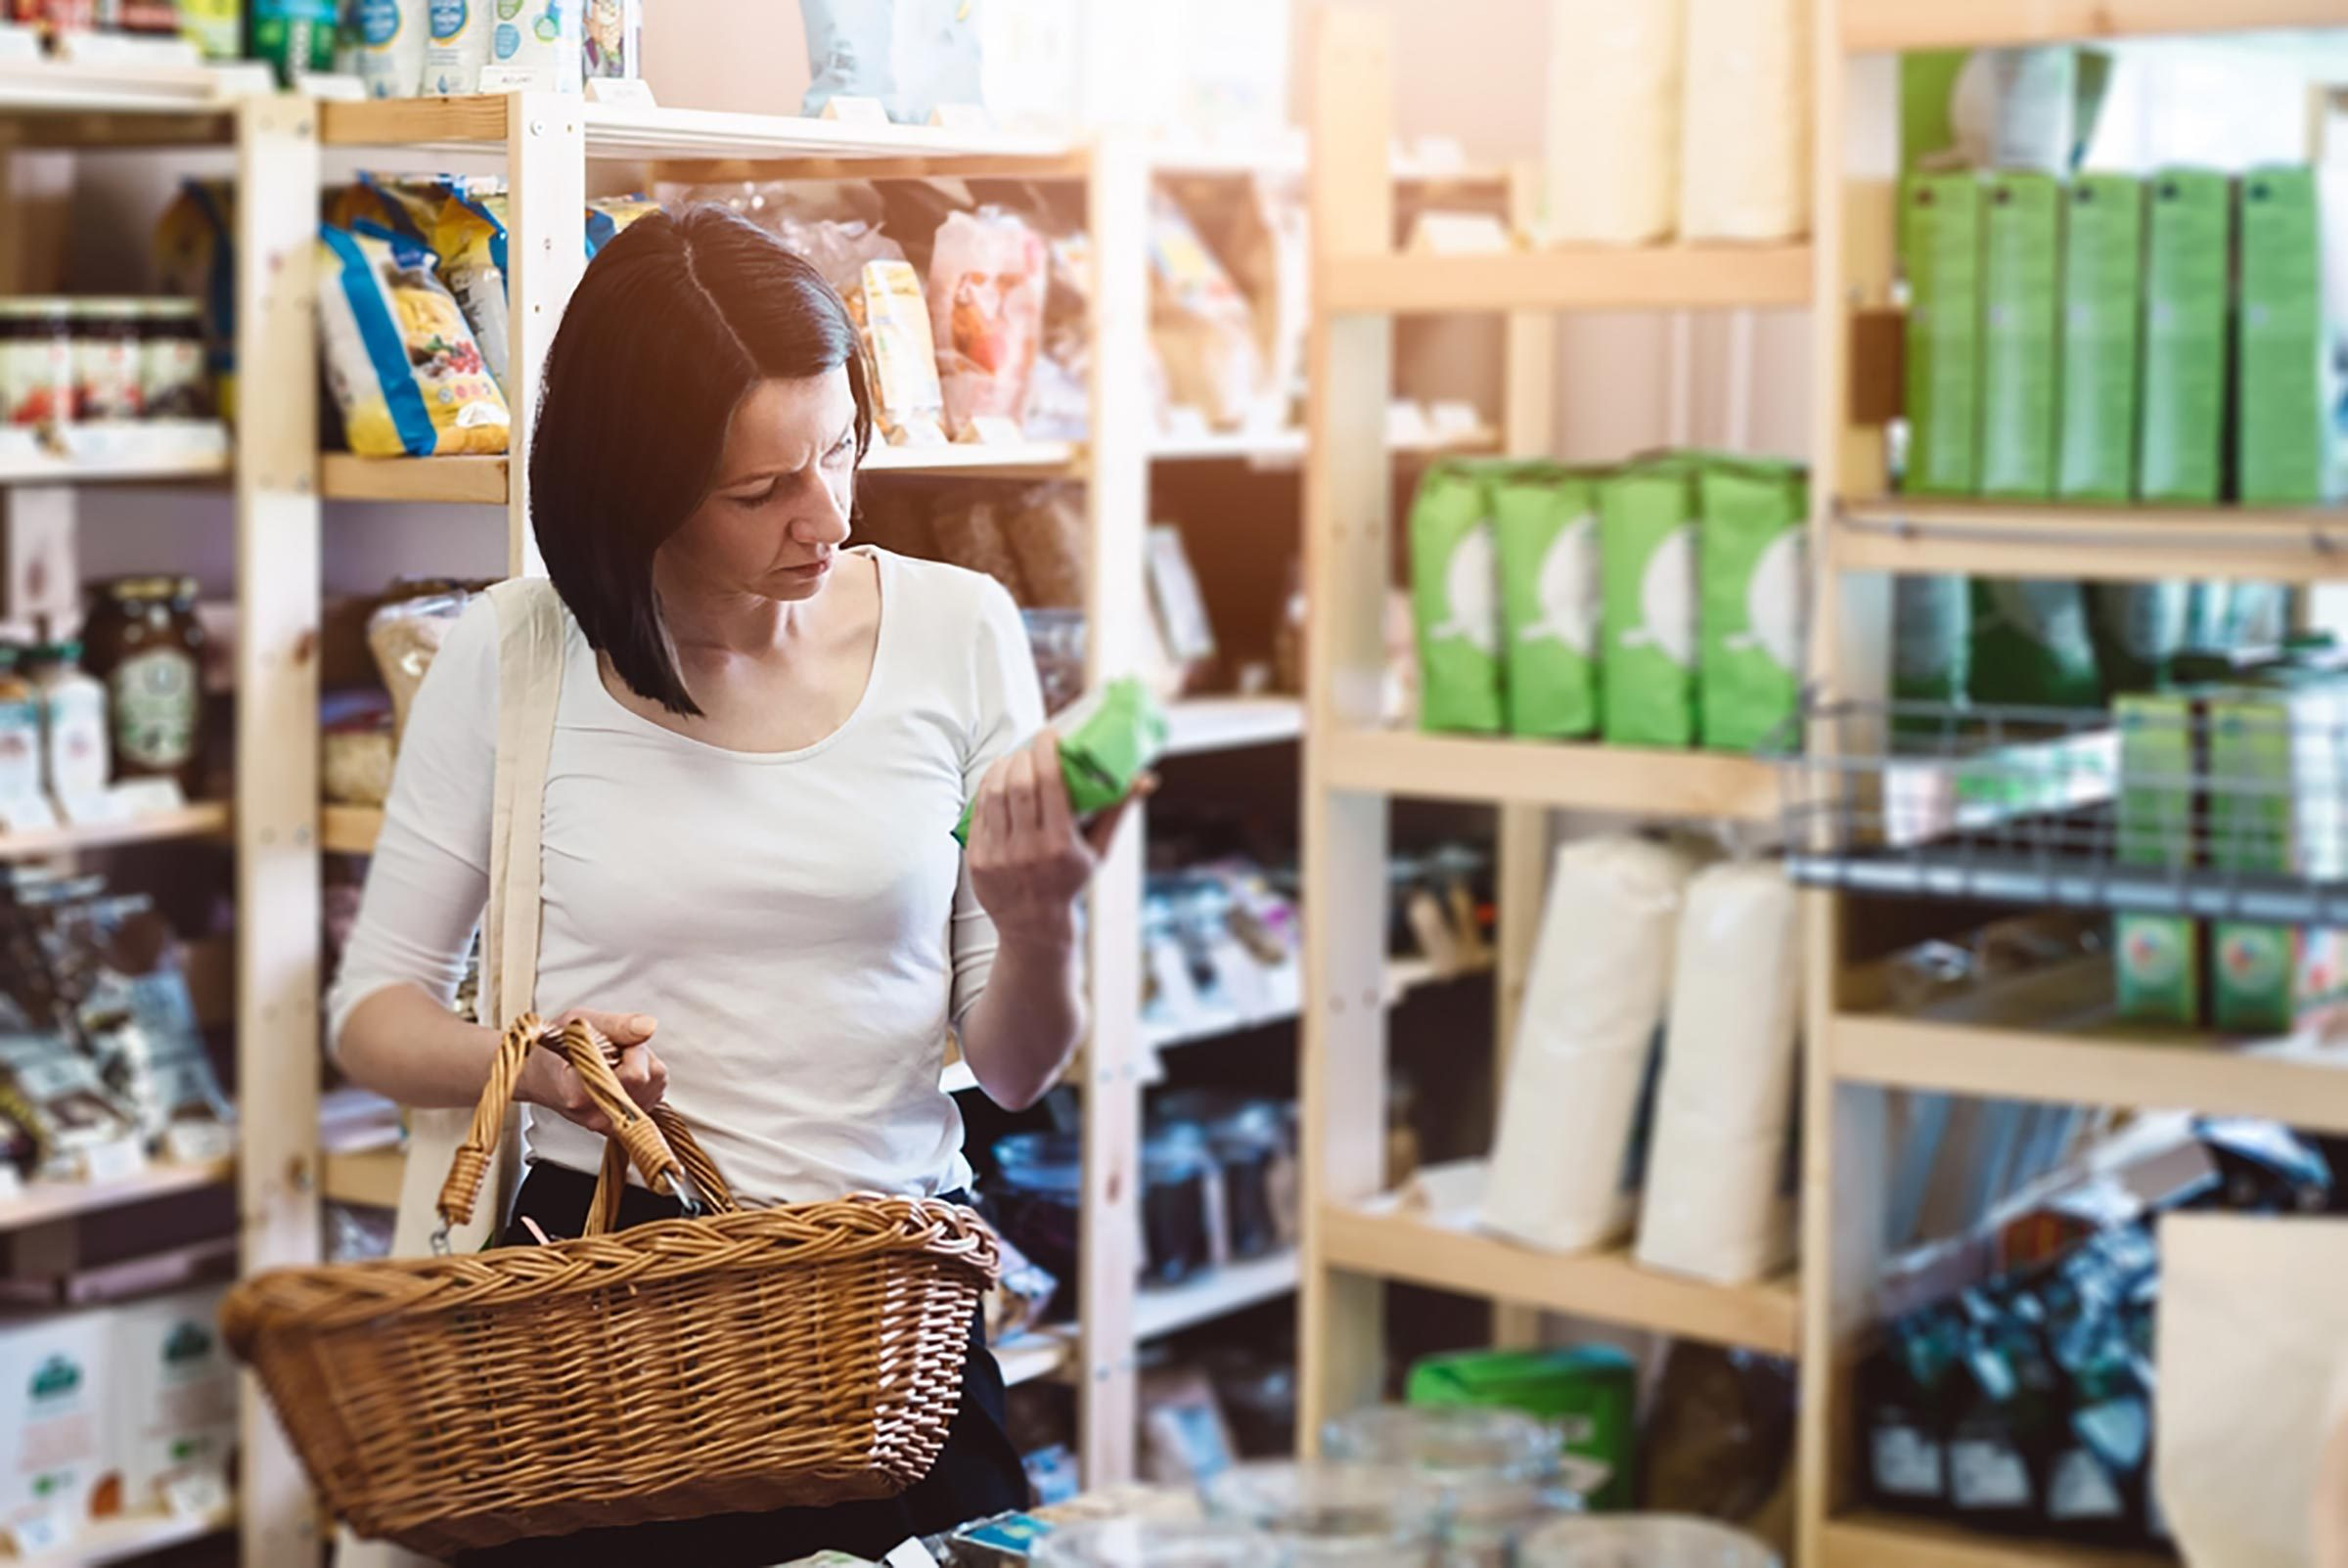 A woman carrying a basket is food shopping.